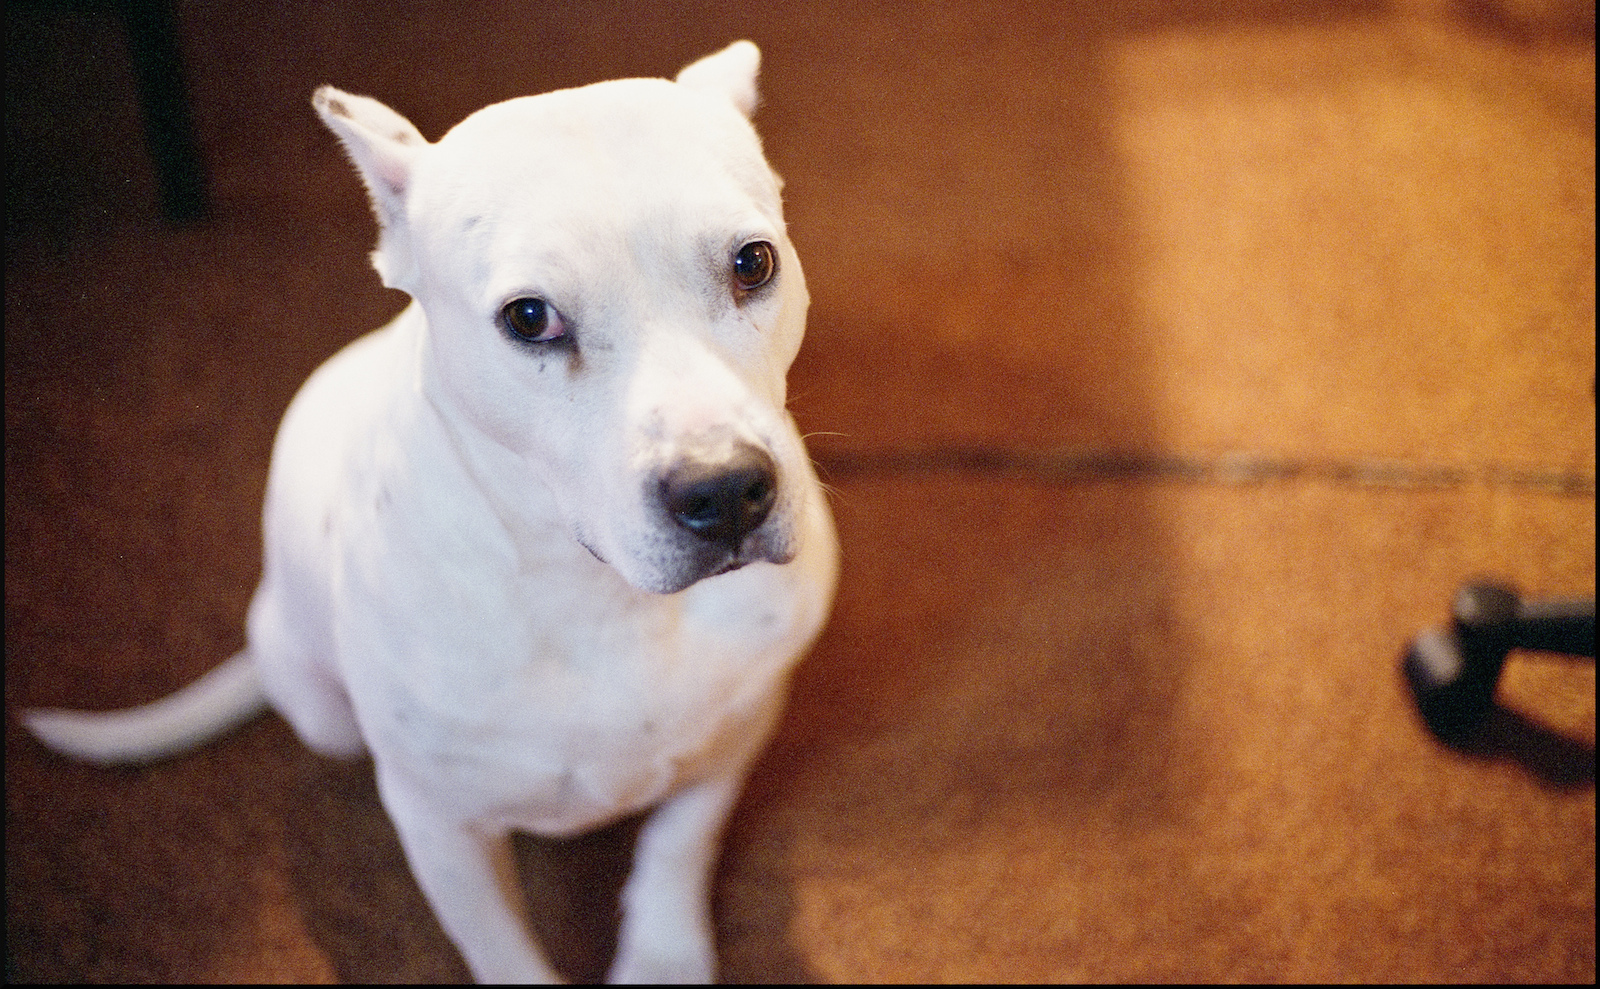 6 Pit bulls who are scared of ordinary things